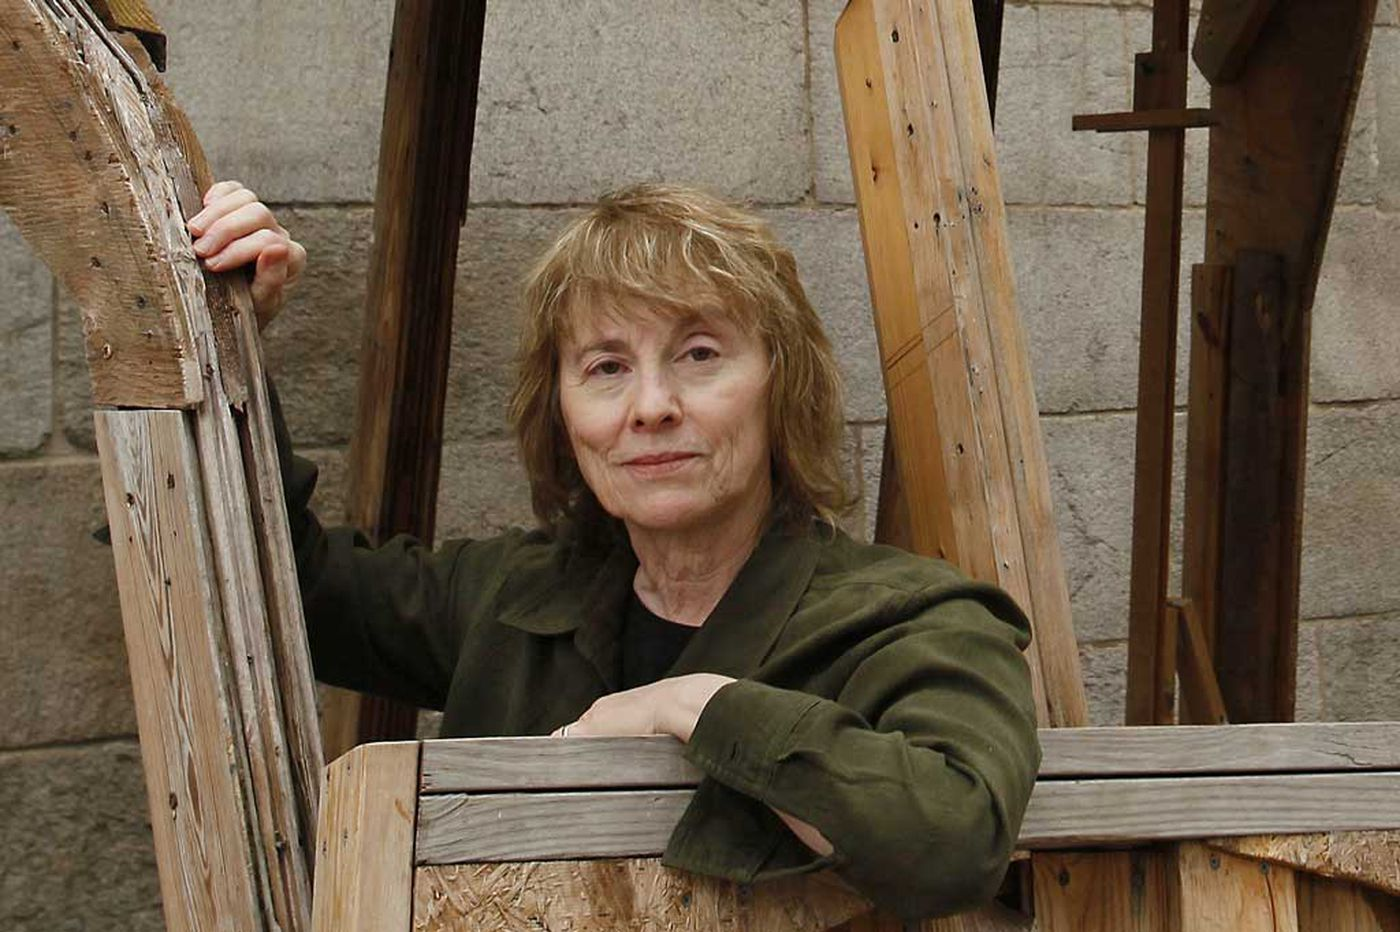 UArts students protest professor Camille Paglia for comments on transgender people, sexual assault survivors